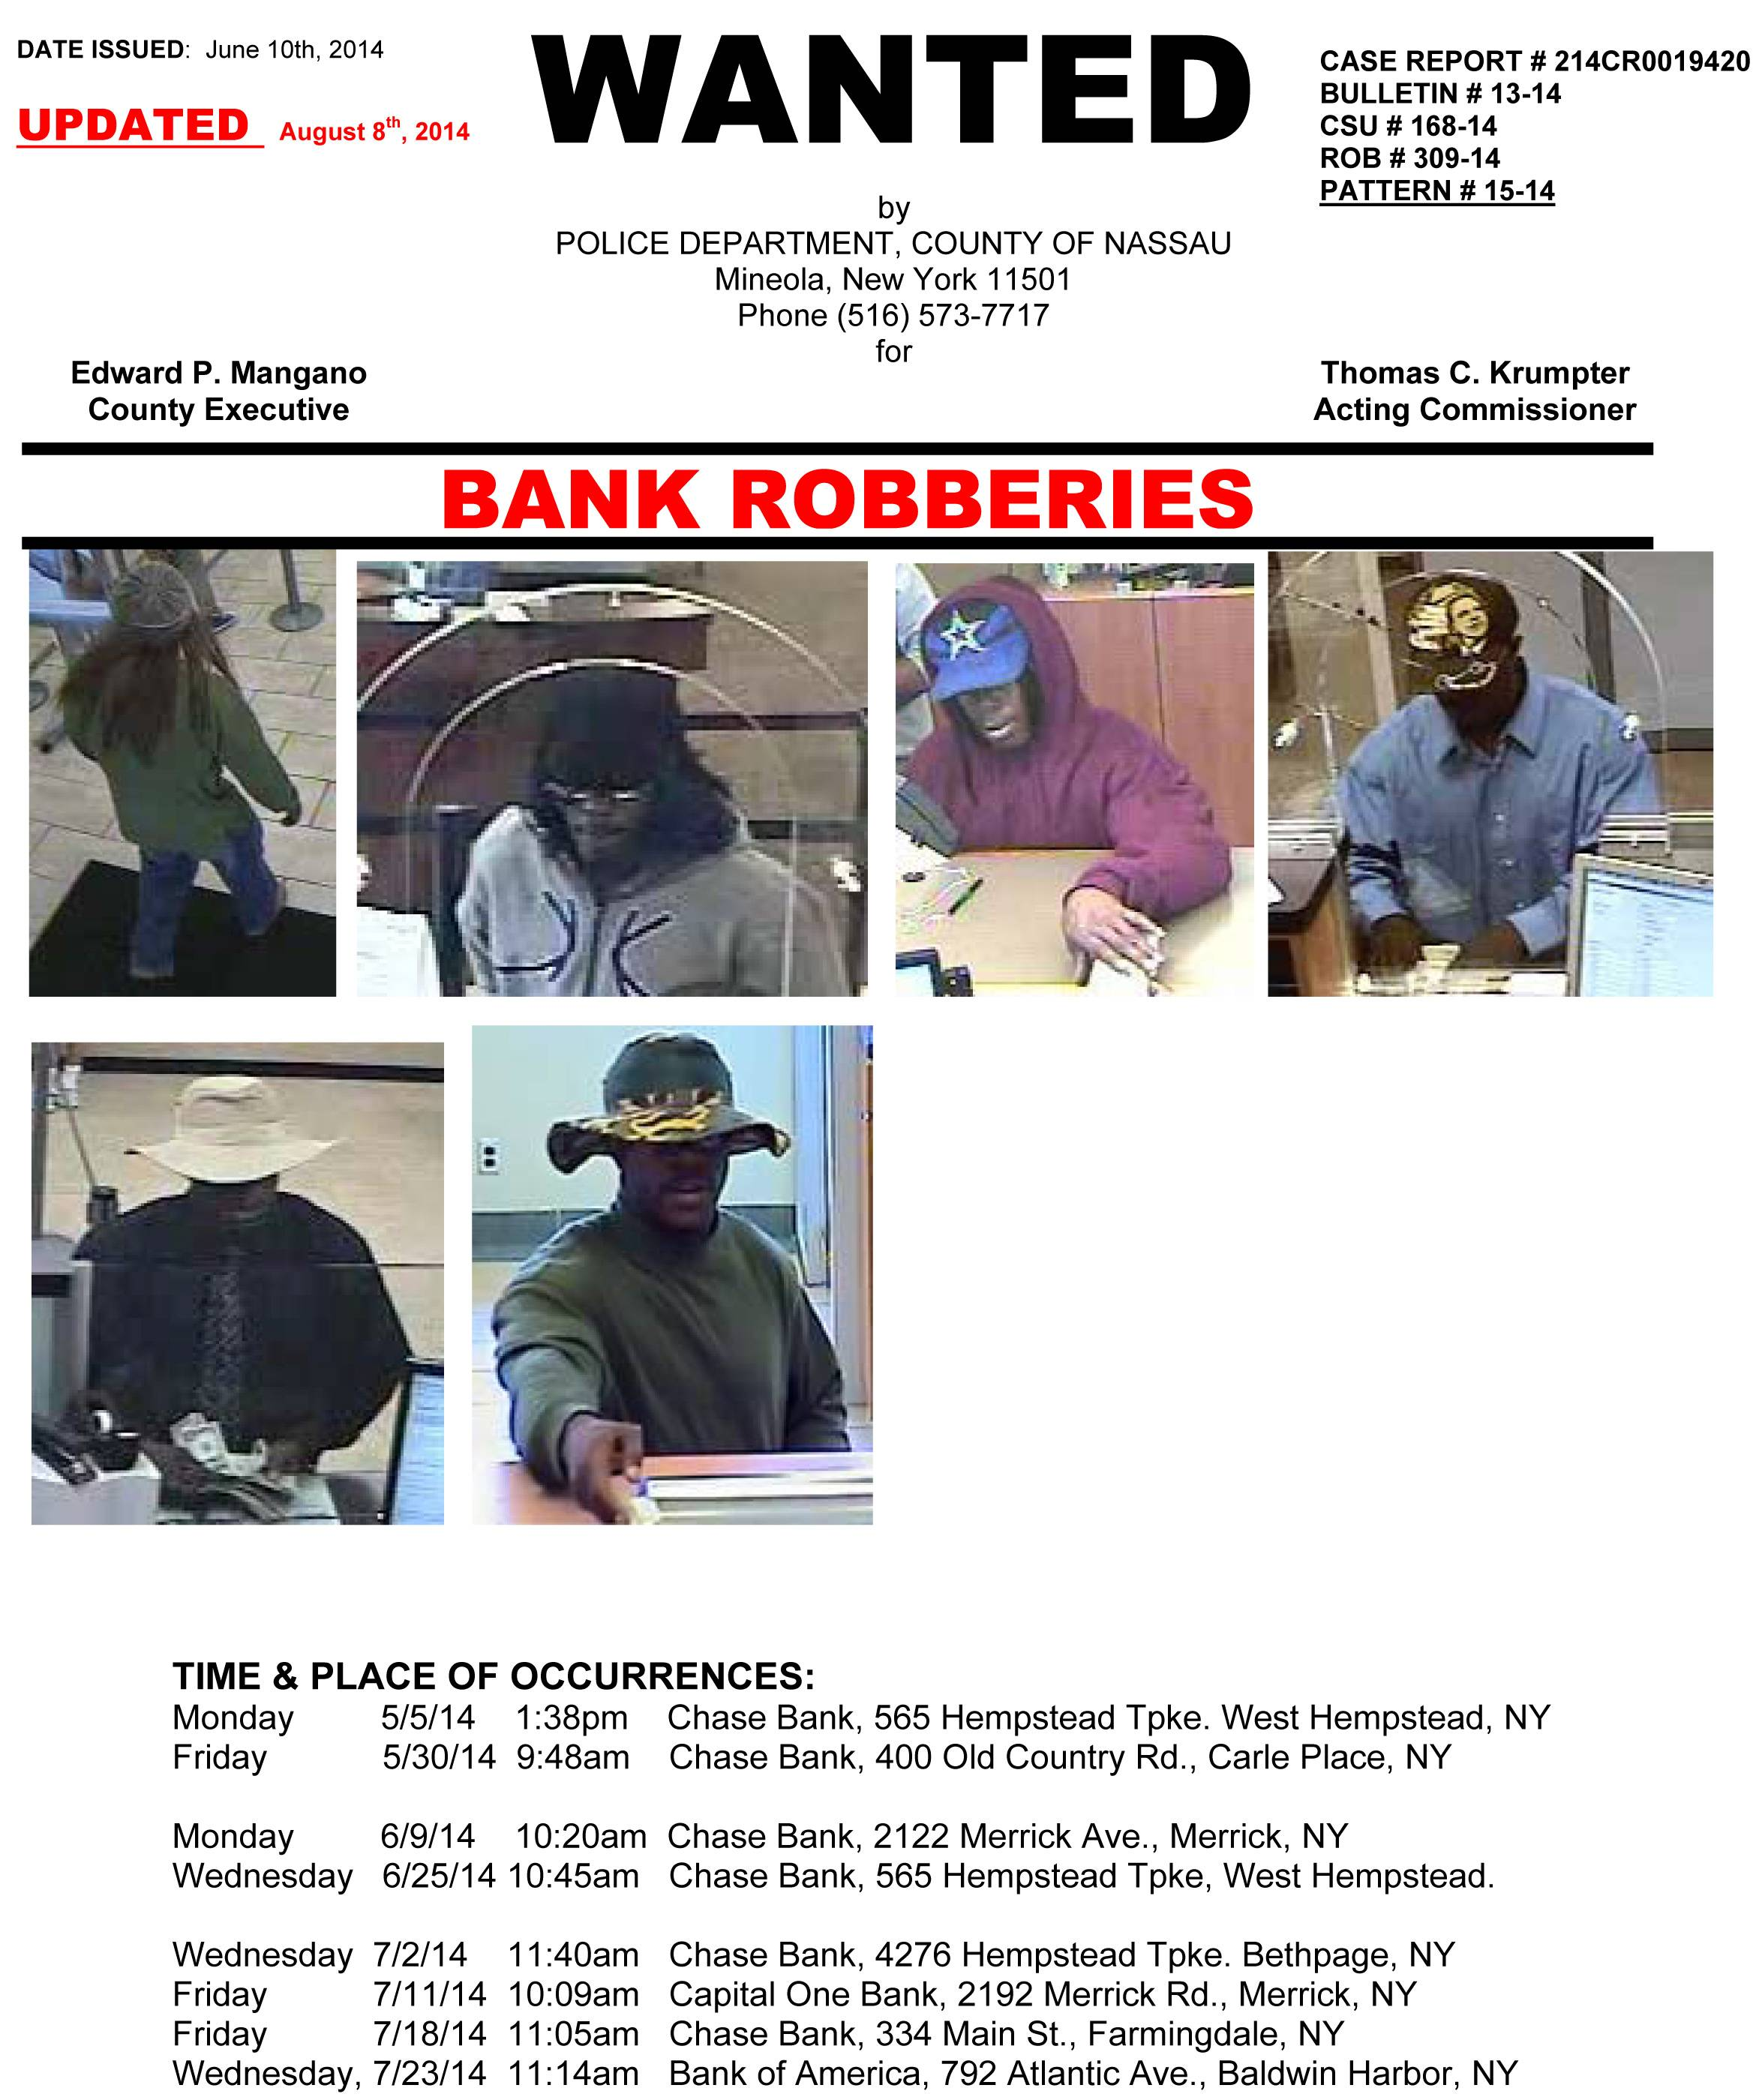 A Wanted Poster shows a man wearing six different hats while robbing banks on New York's Long Island.